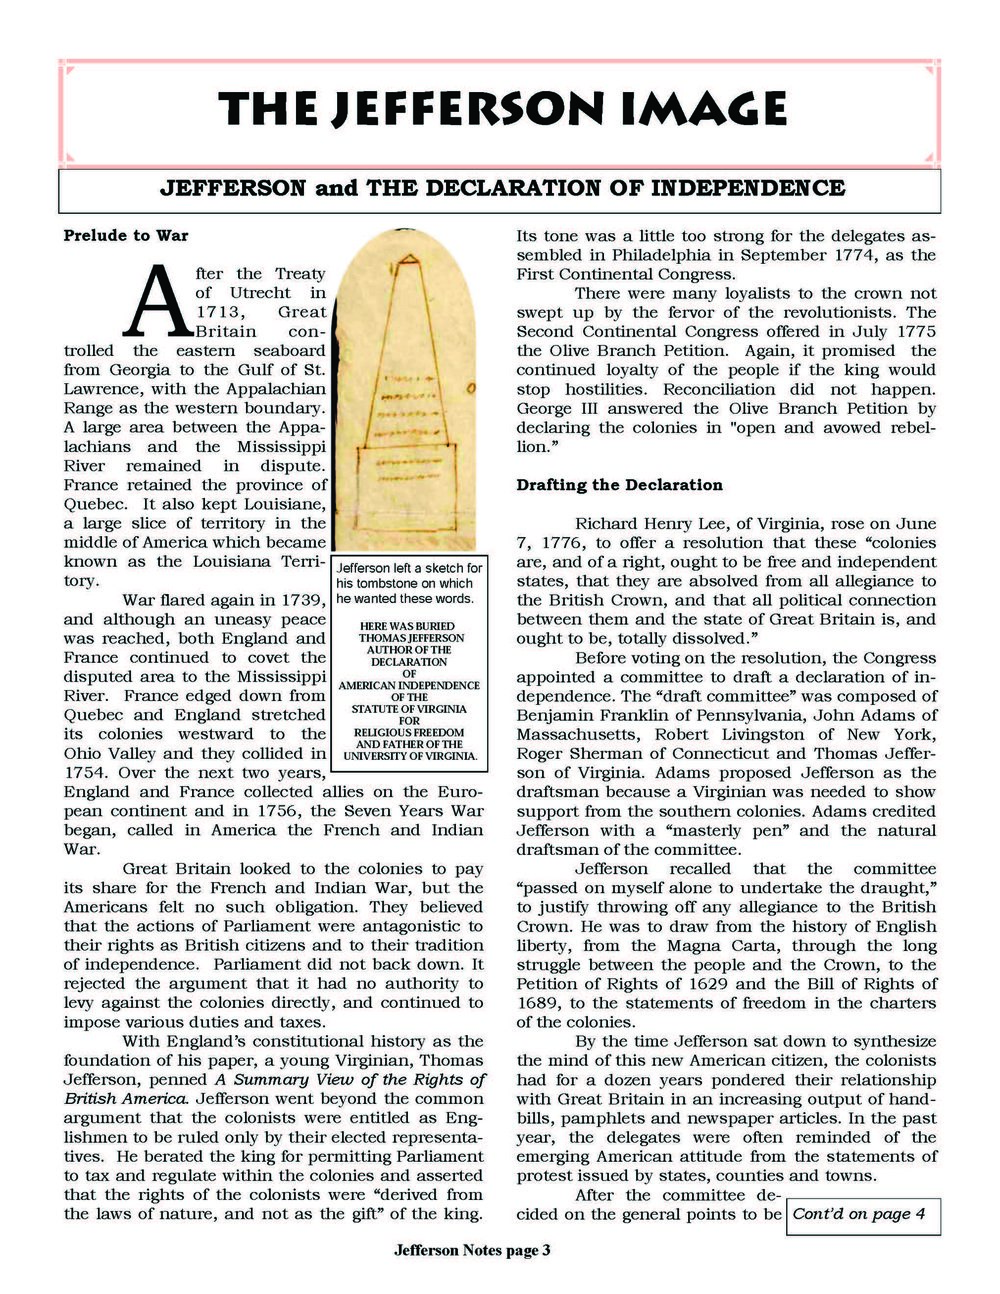 jeffersonimagespring2010-declaration-independence_Page_1.jpg